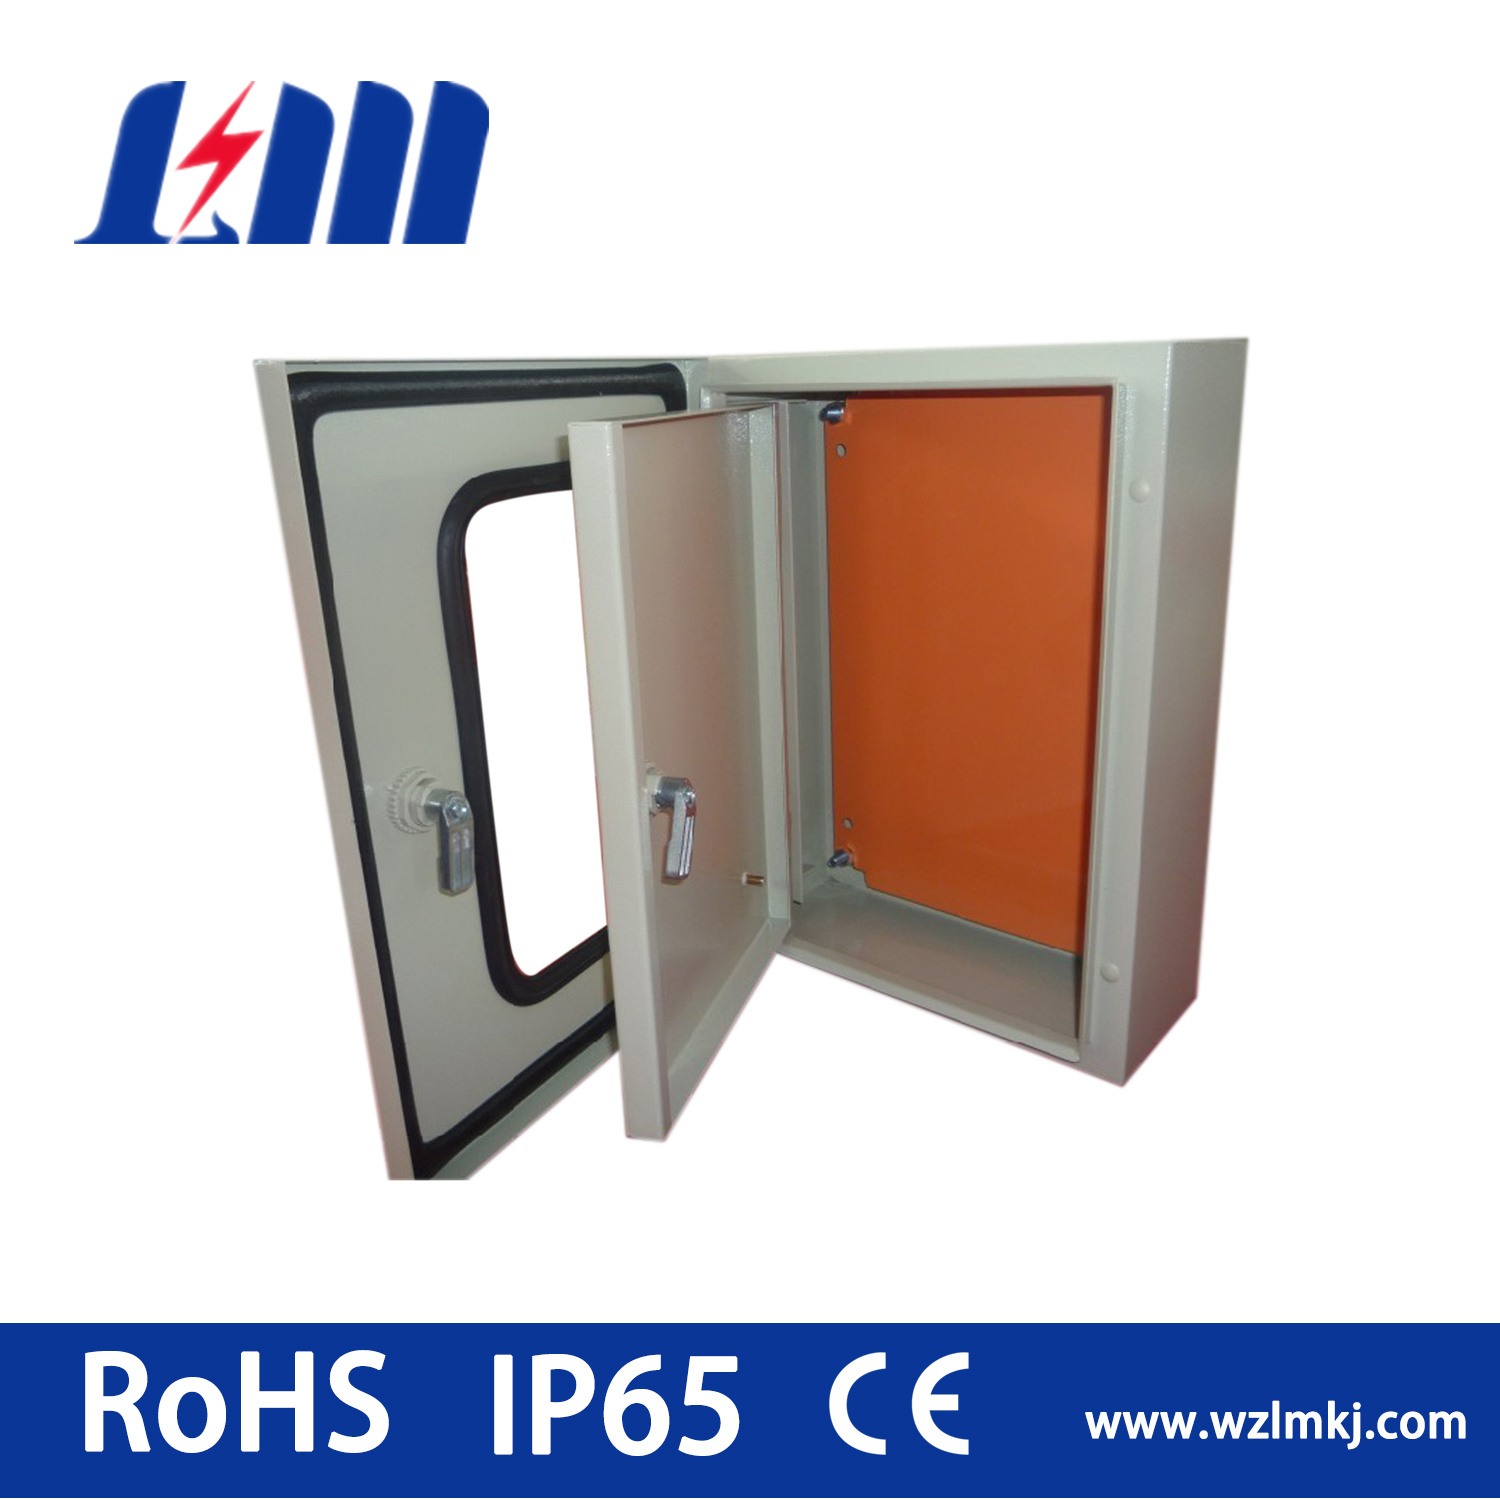 Stainless Steel Distribution Box with Glass IP65/AISI304 Enclosure